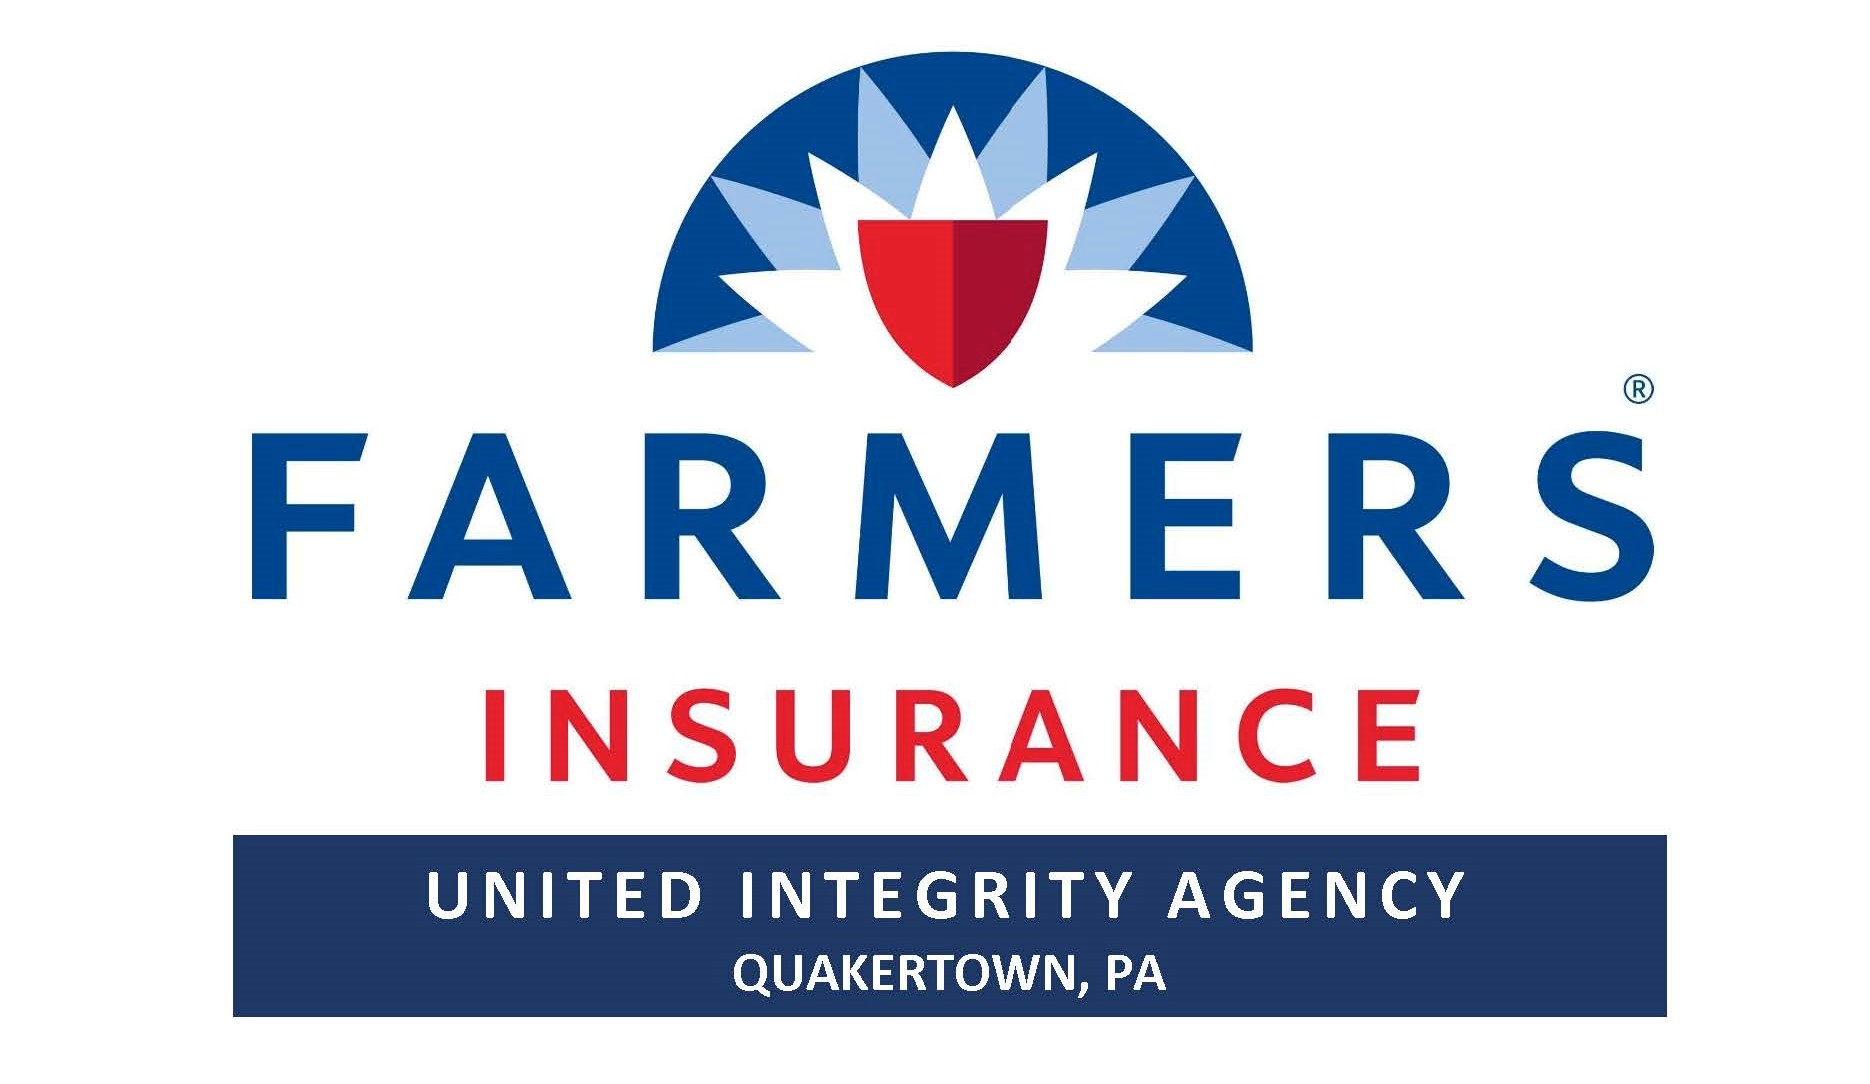 farmers insurance - united integrity agency